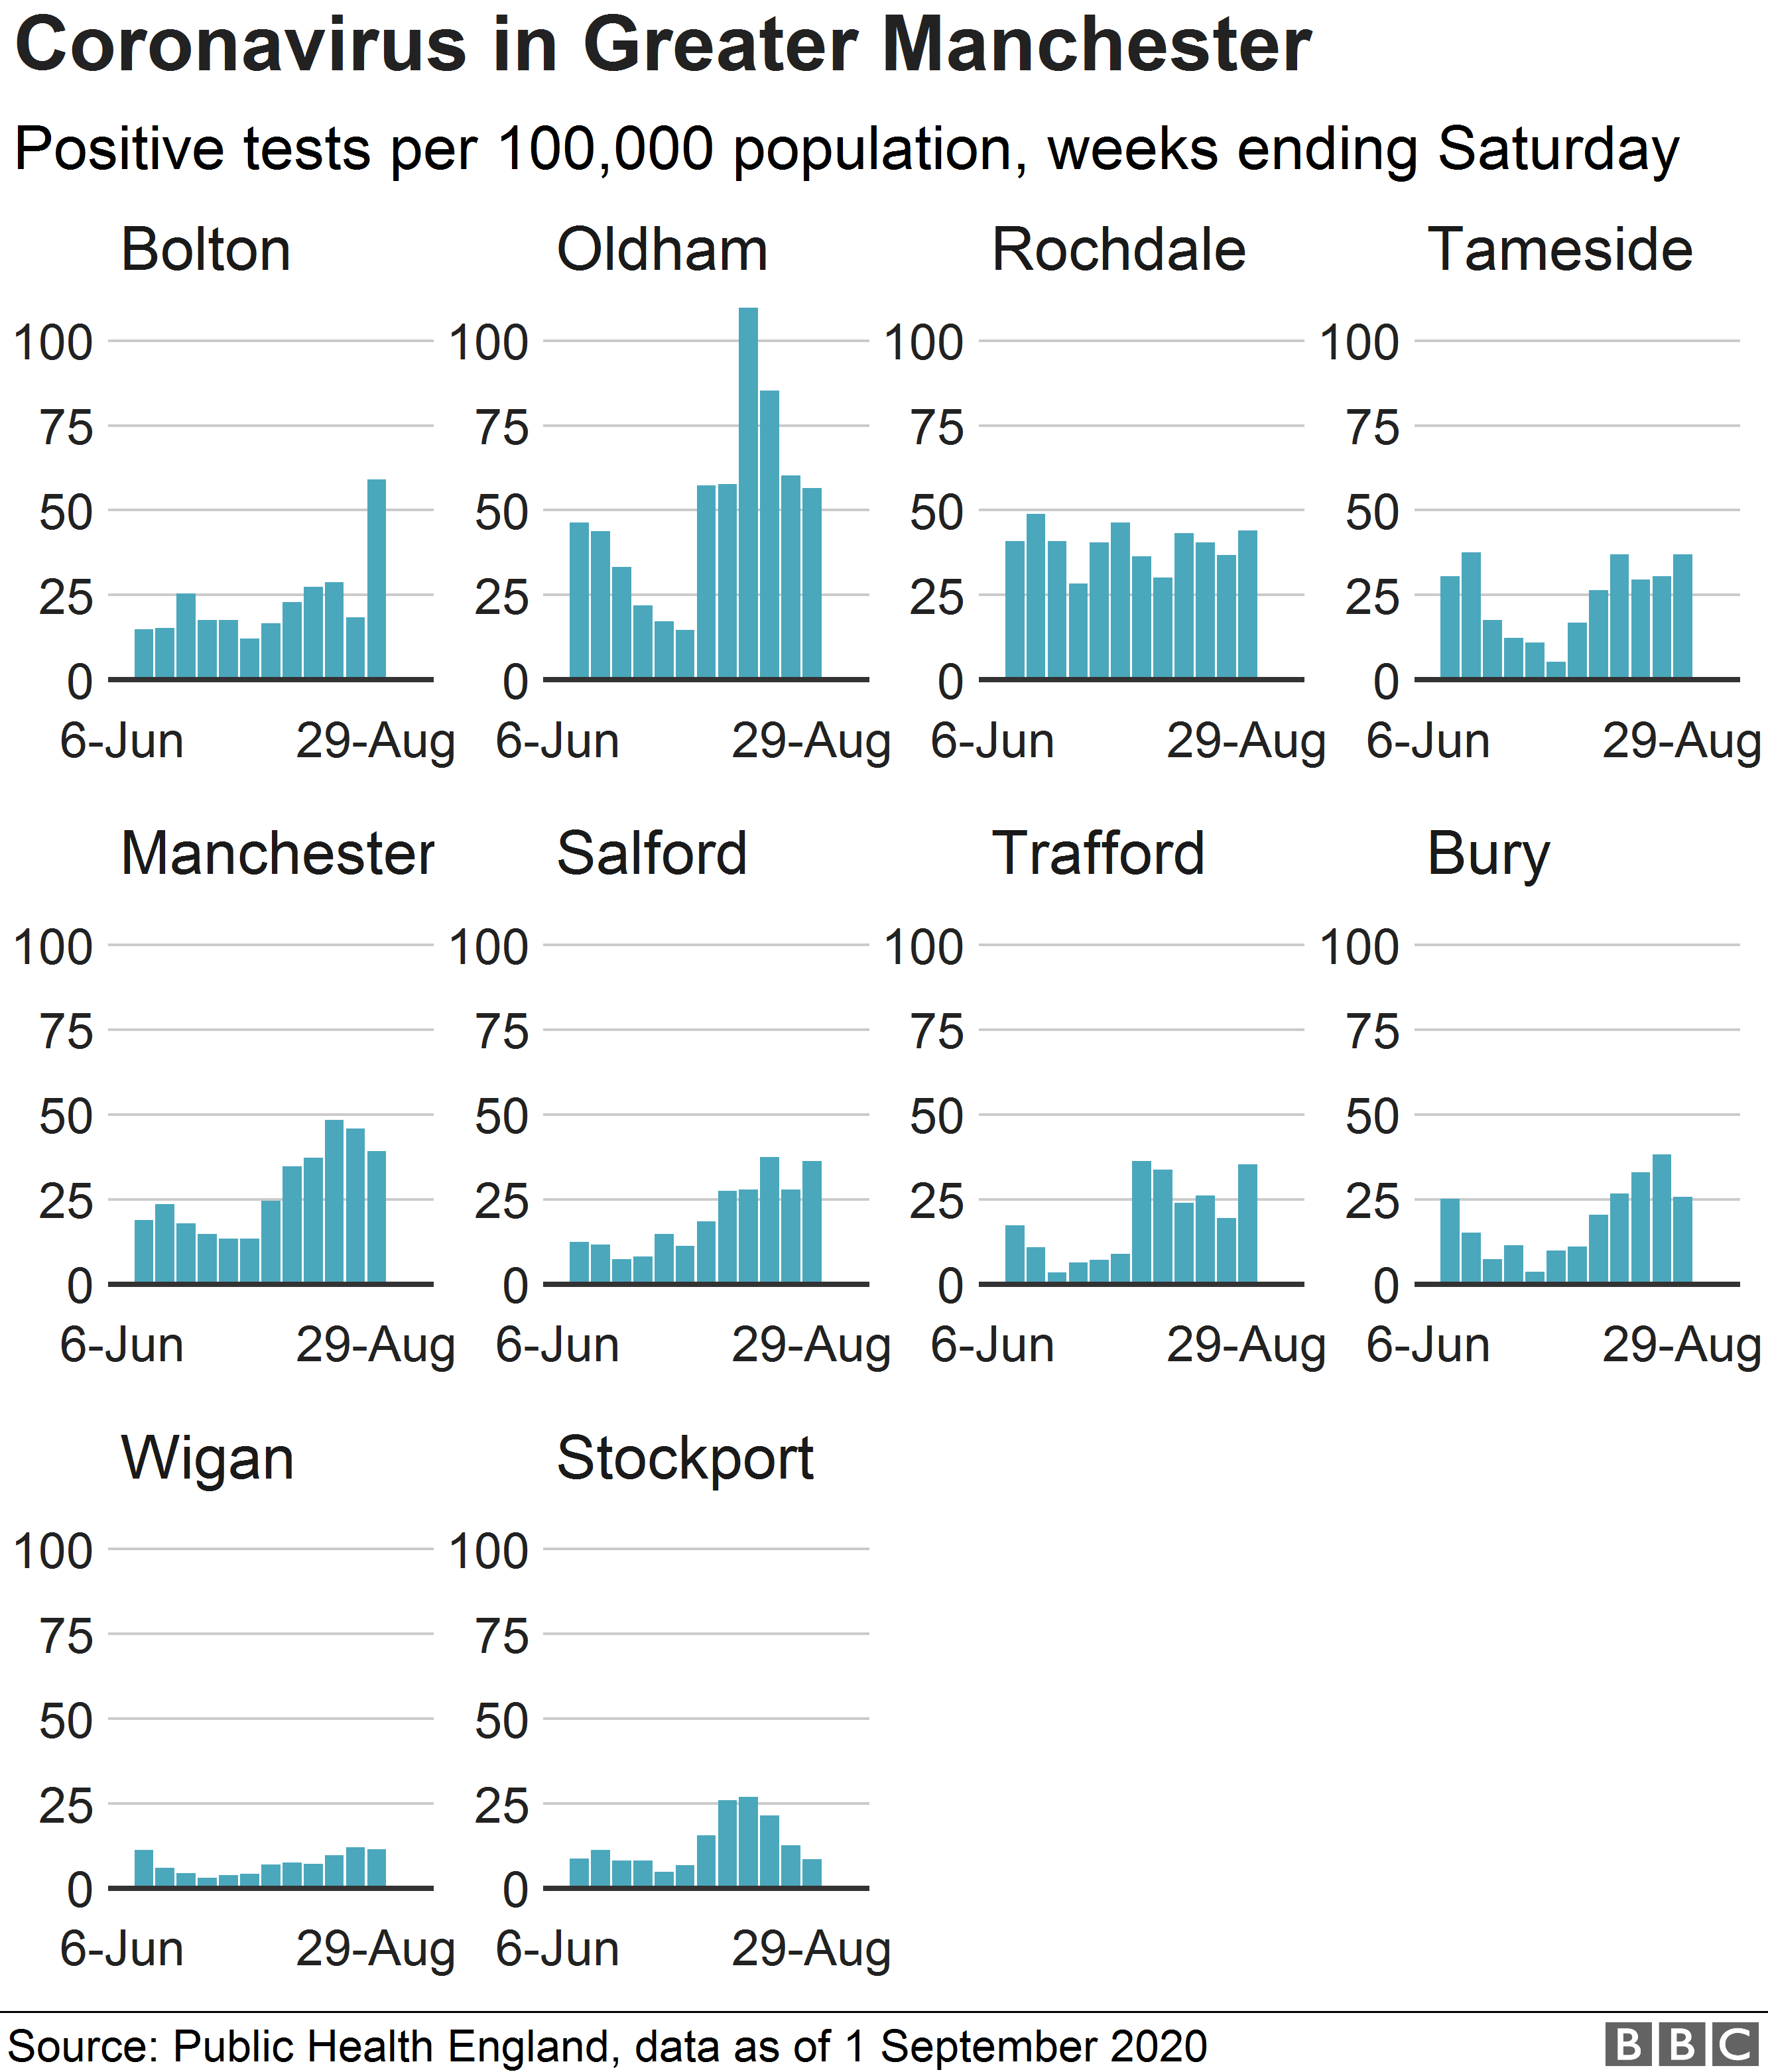 Chart showing cases of coronavirus in Greater Manchester boroughs